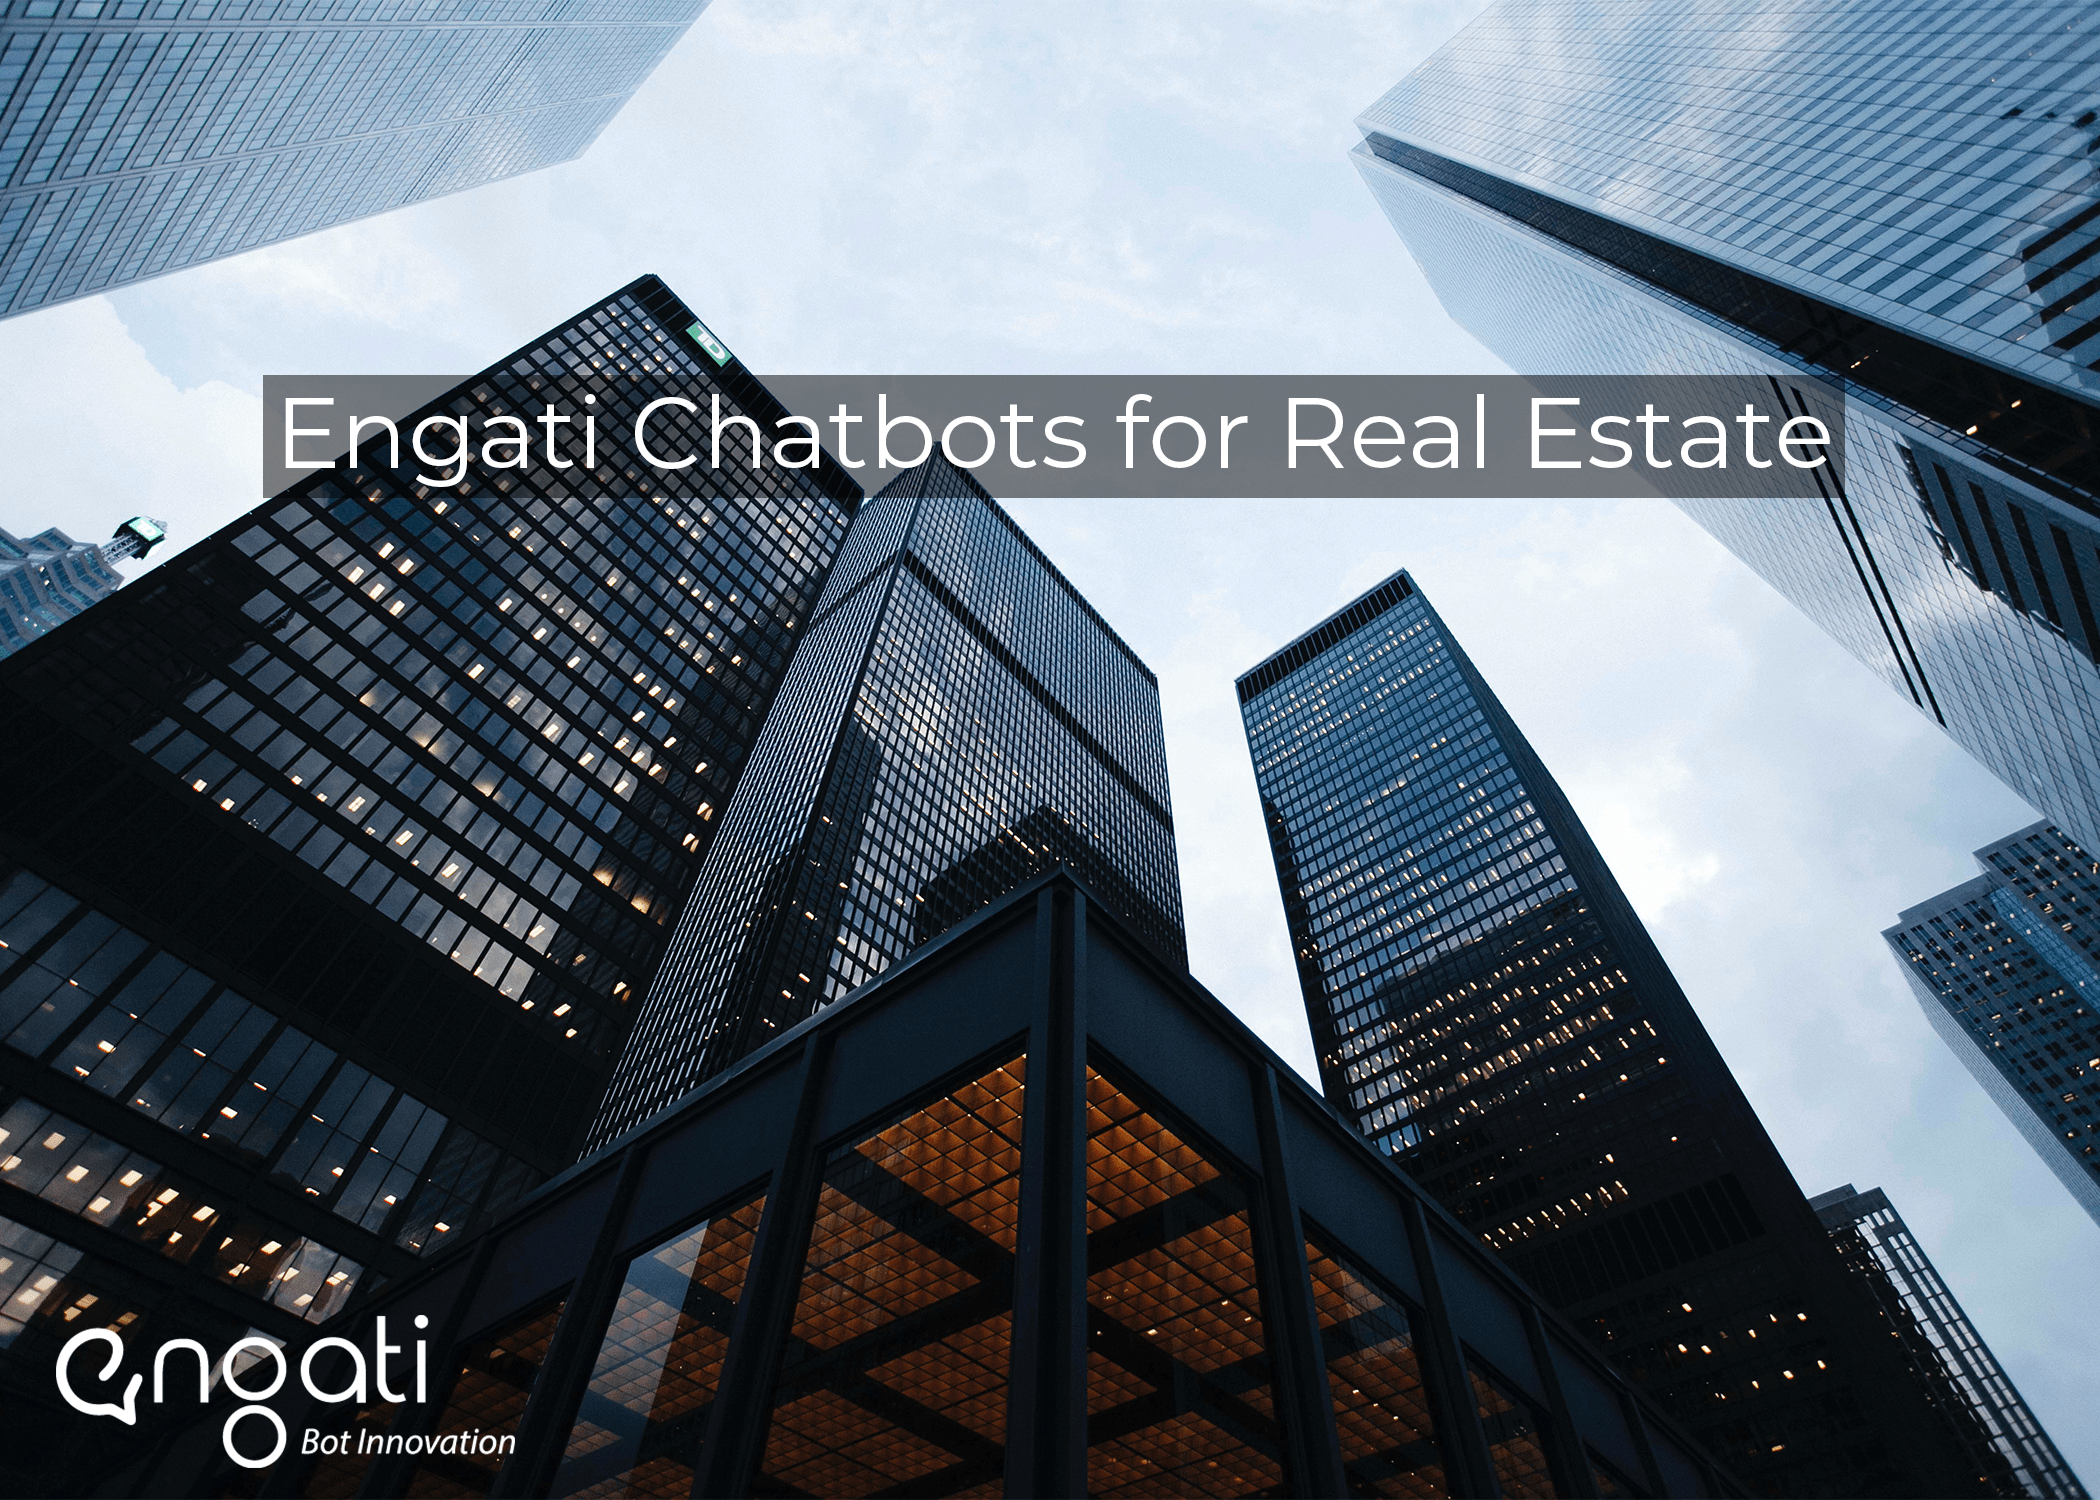 How does the real estate sector benefit from chatbots?